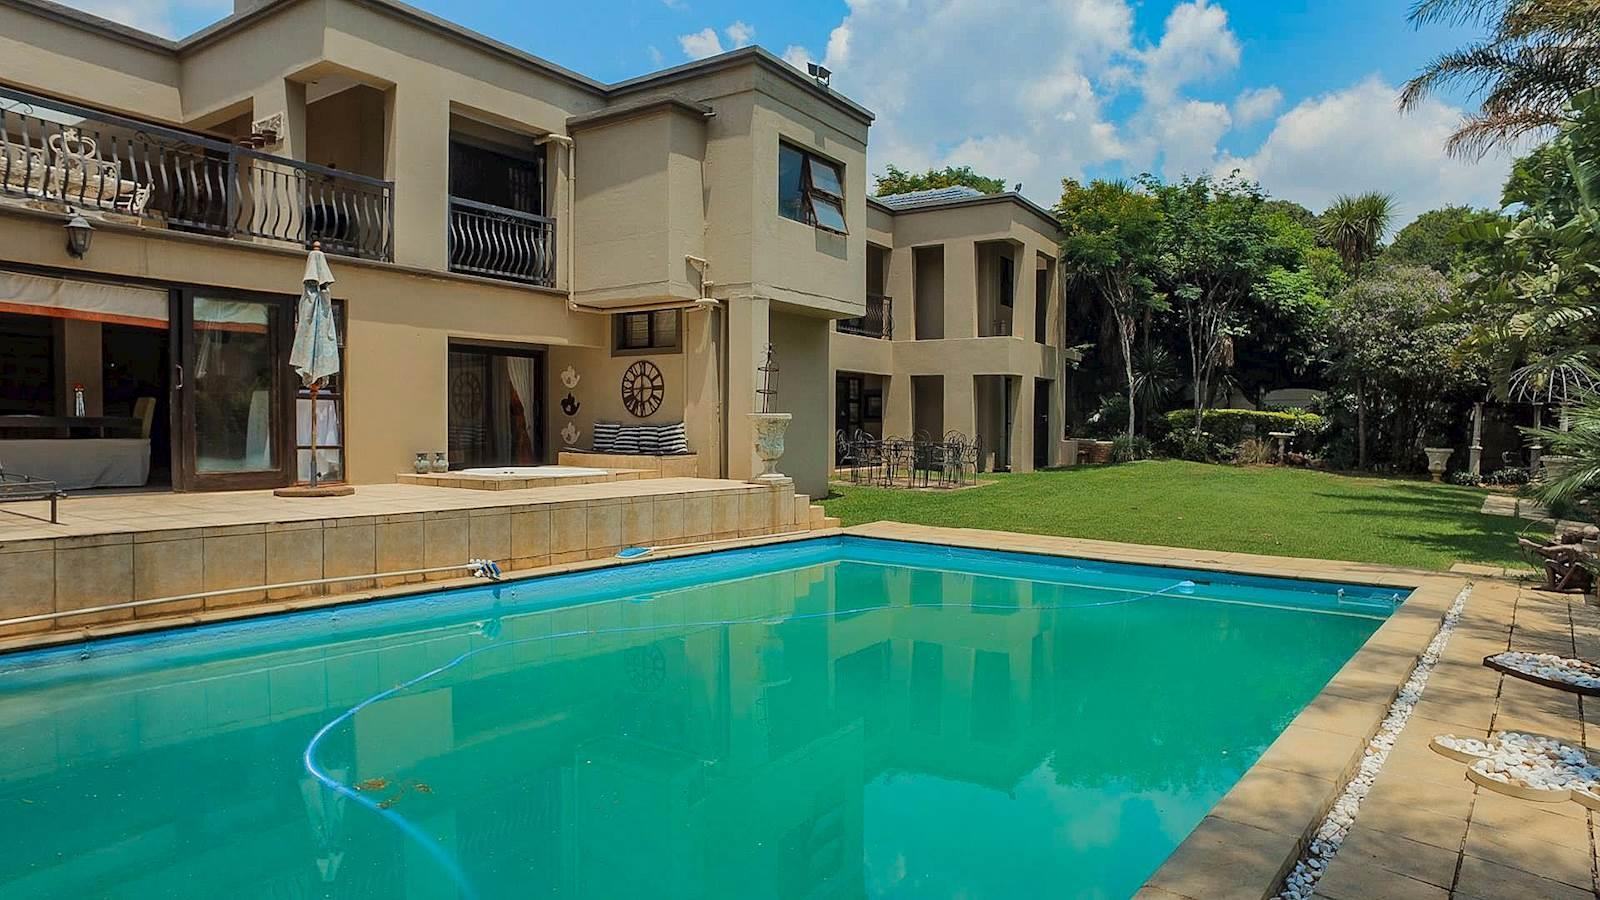 Johannesburg, Northcliff Property  | Houses For Sale Northcliff, Northcliff, House 5 bedrooms property for sale Price:3,999,000